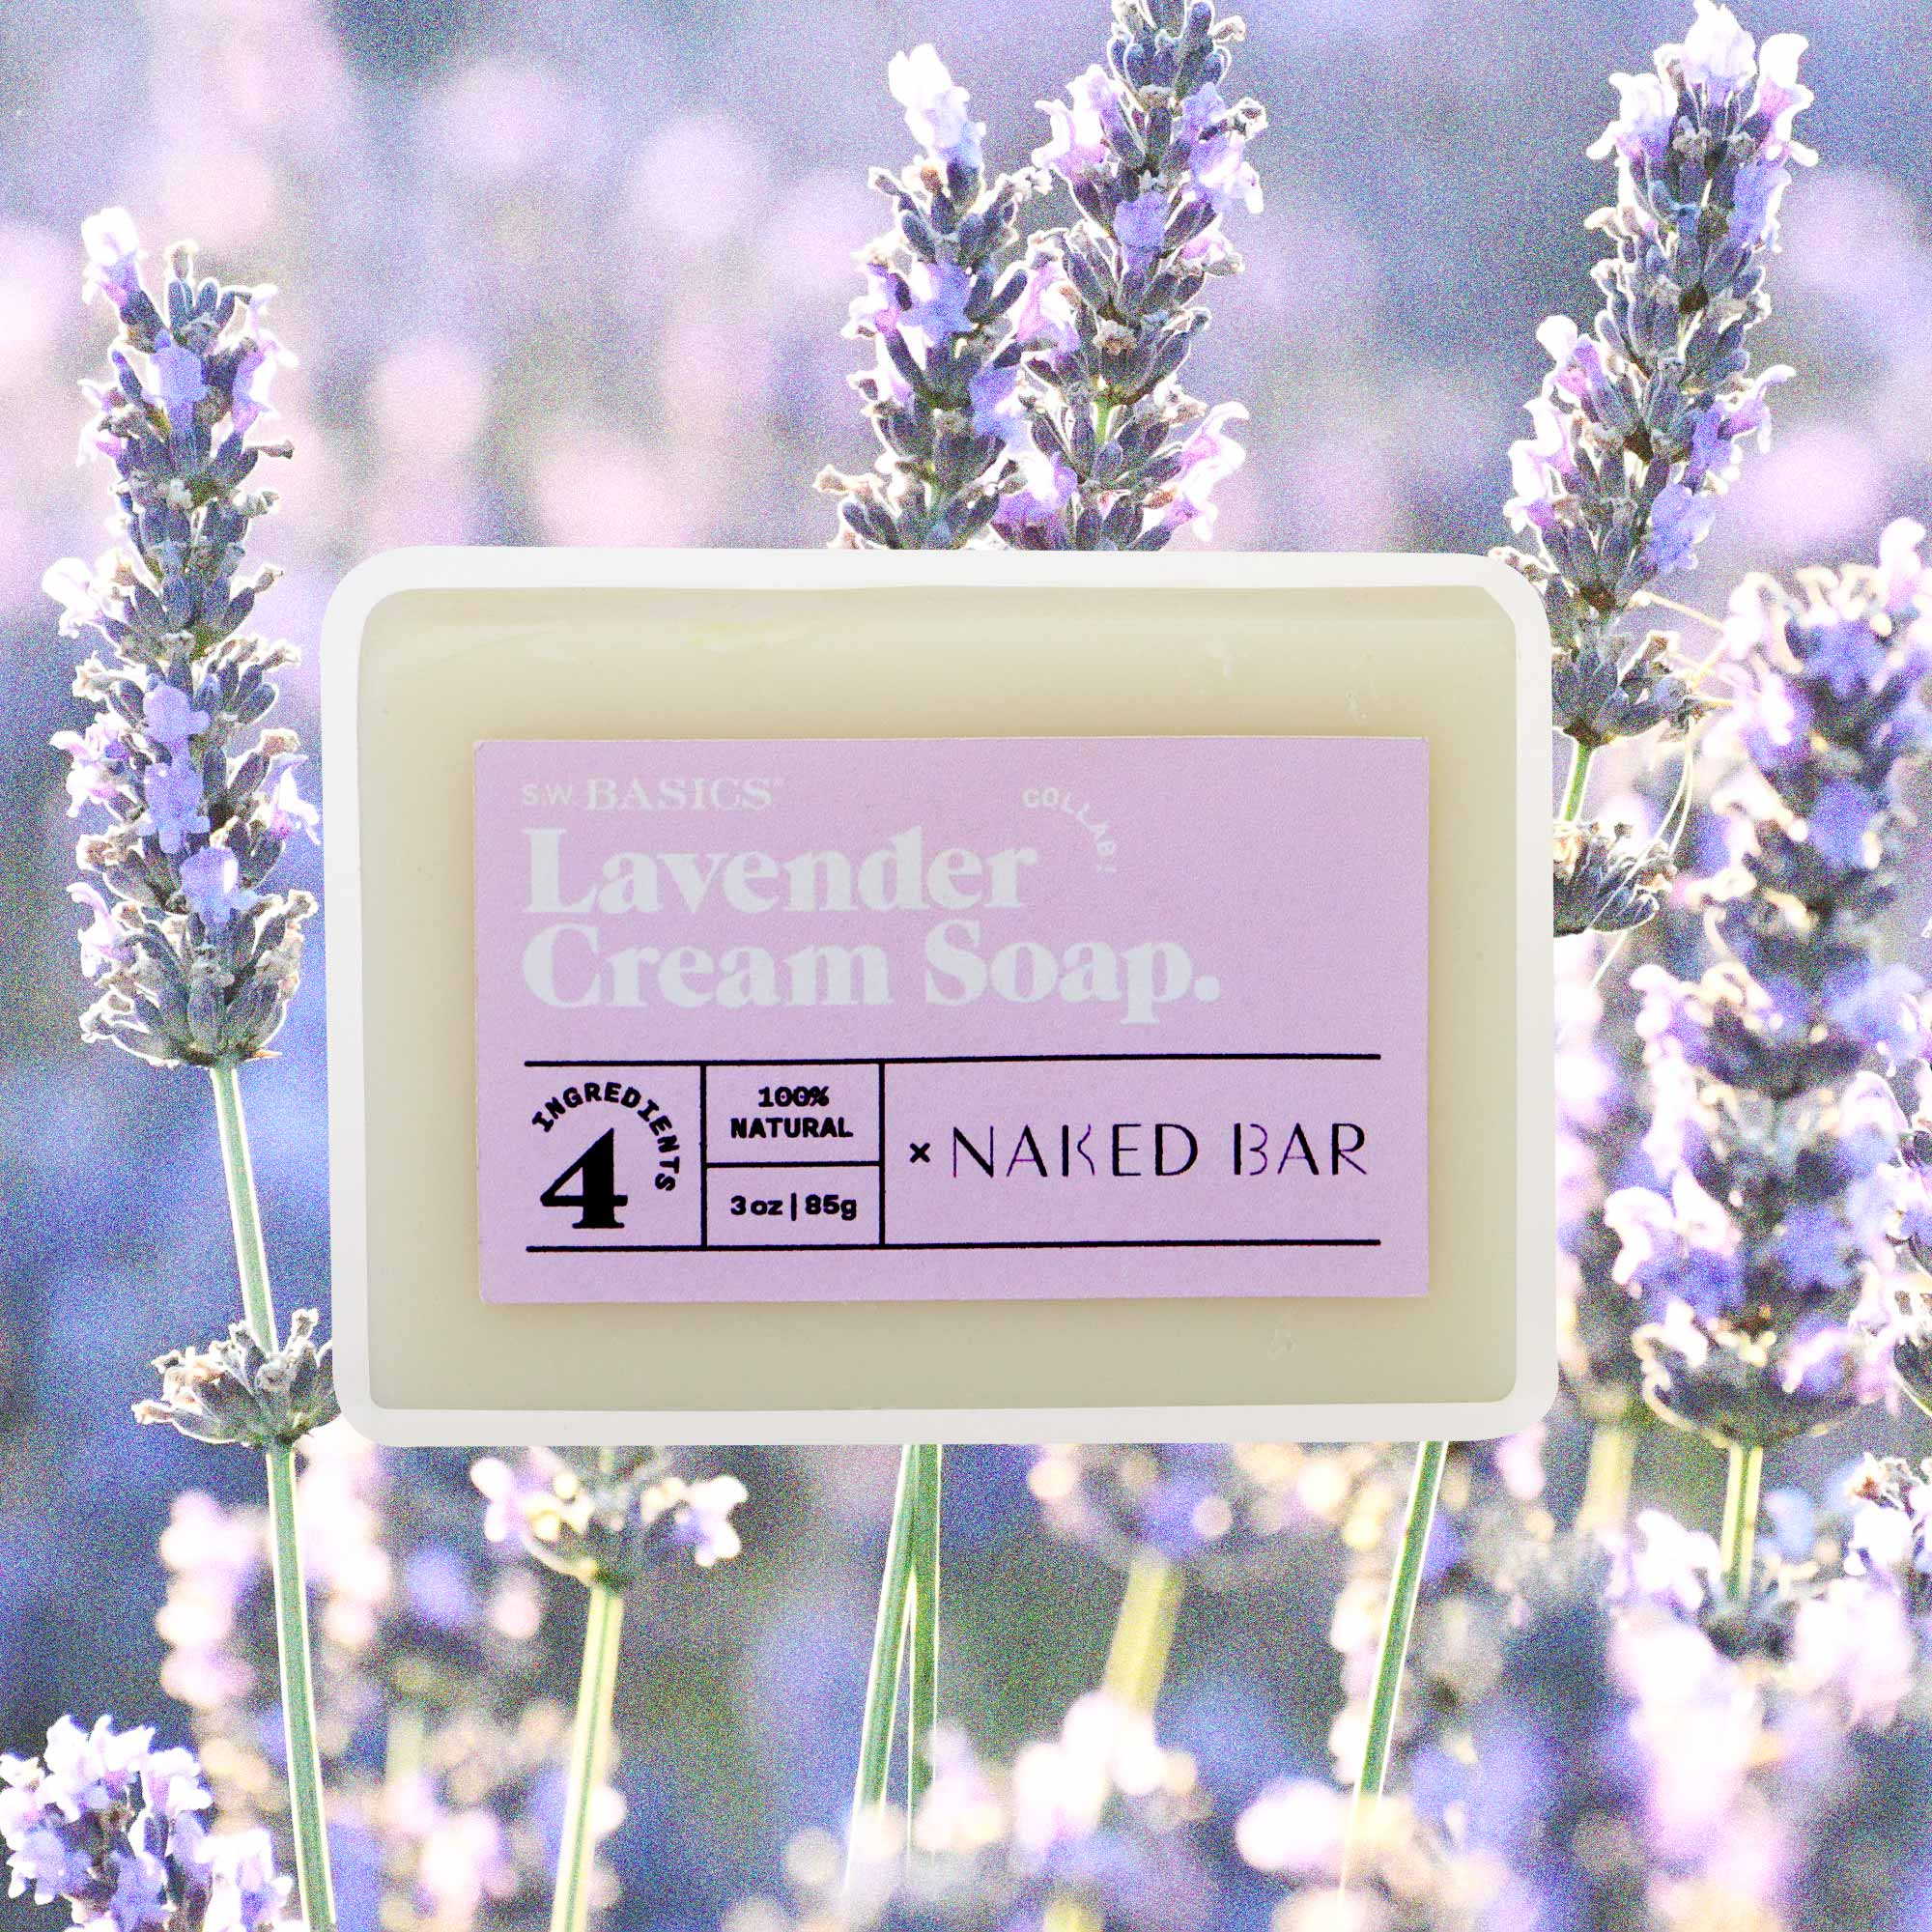 S.W. Basics x Naked Bar Soap Co. Lavender Cream Soap.